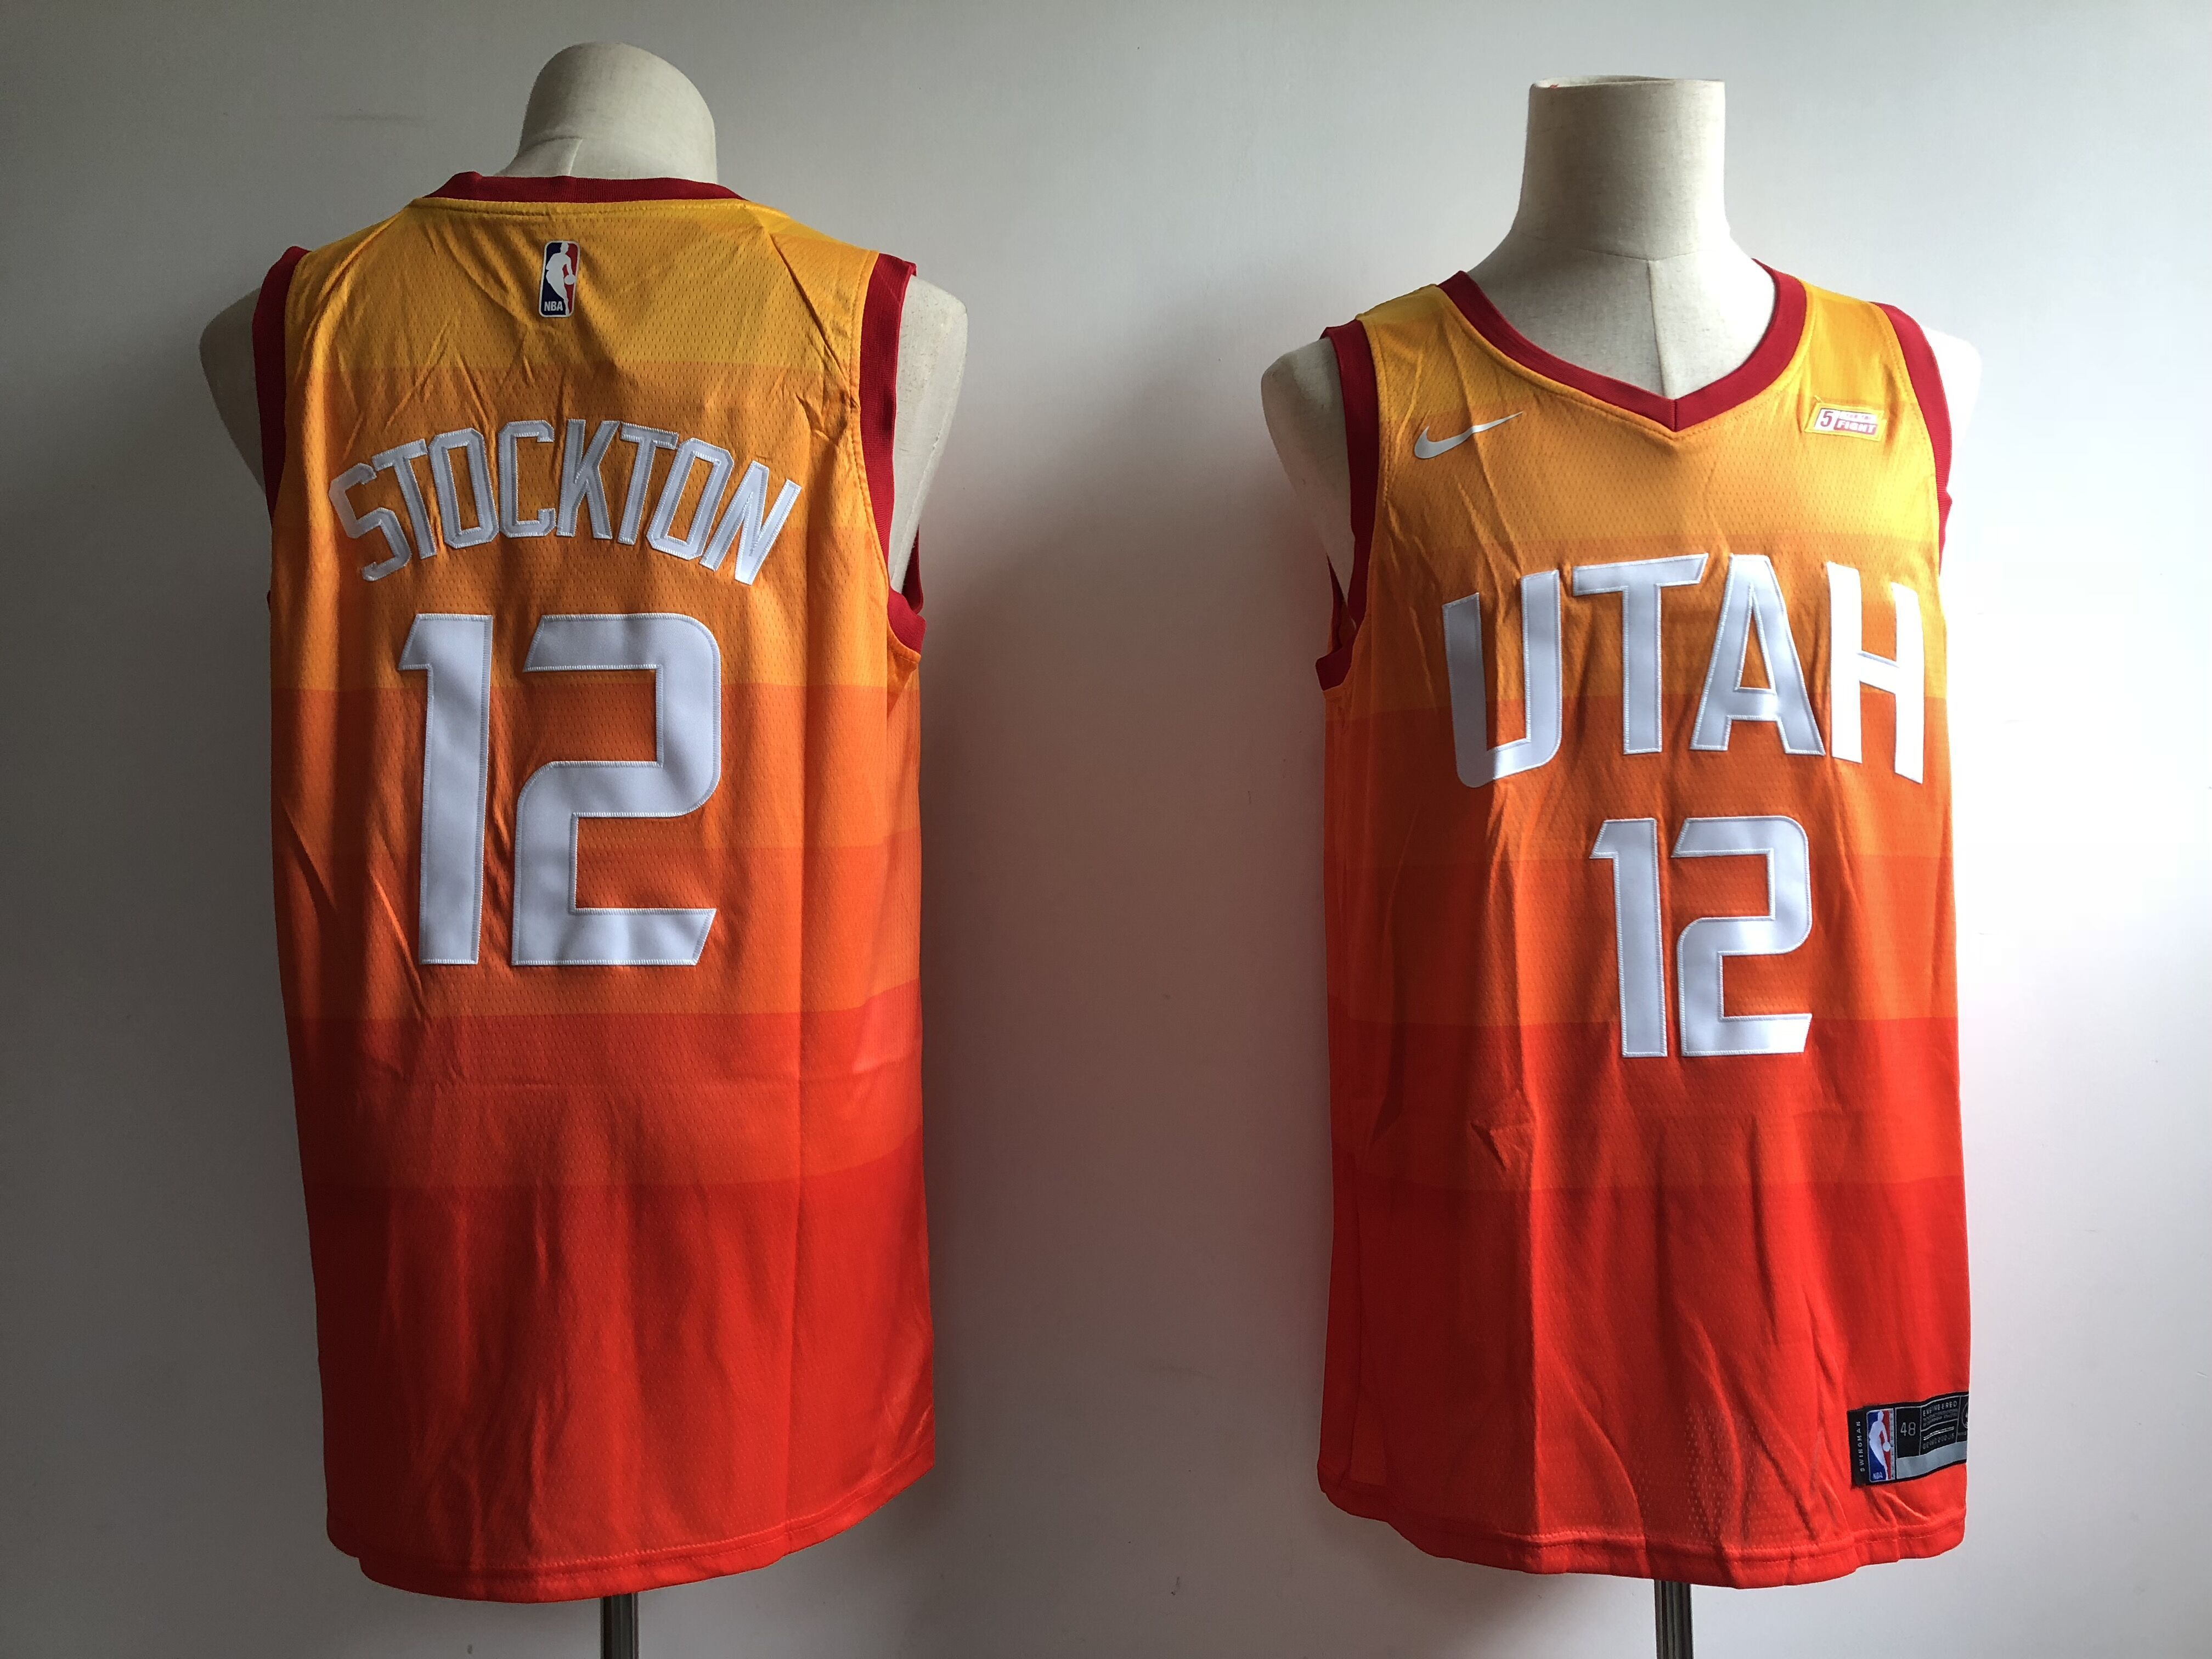 Men Utah Jazz 12 Stockton Orange City Edition Game Nike NBA Jerseys